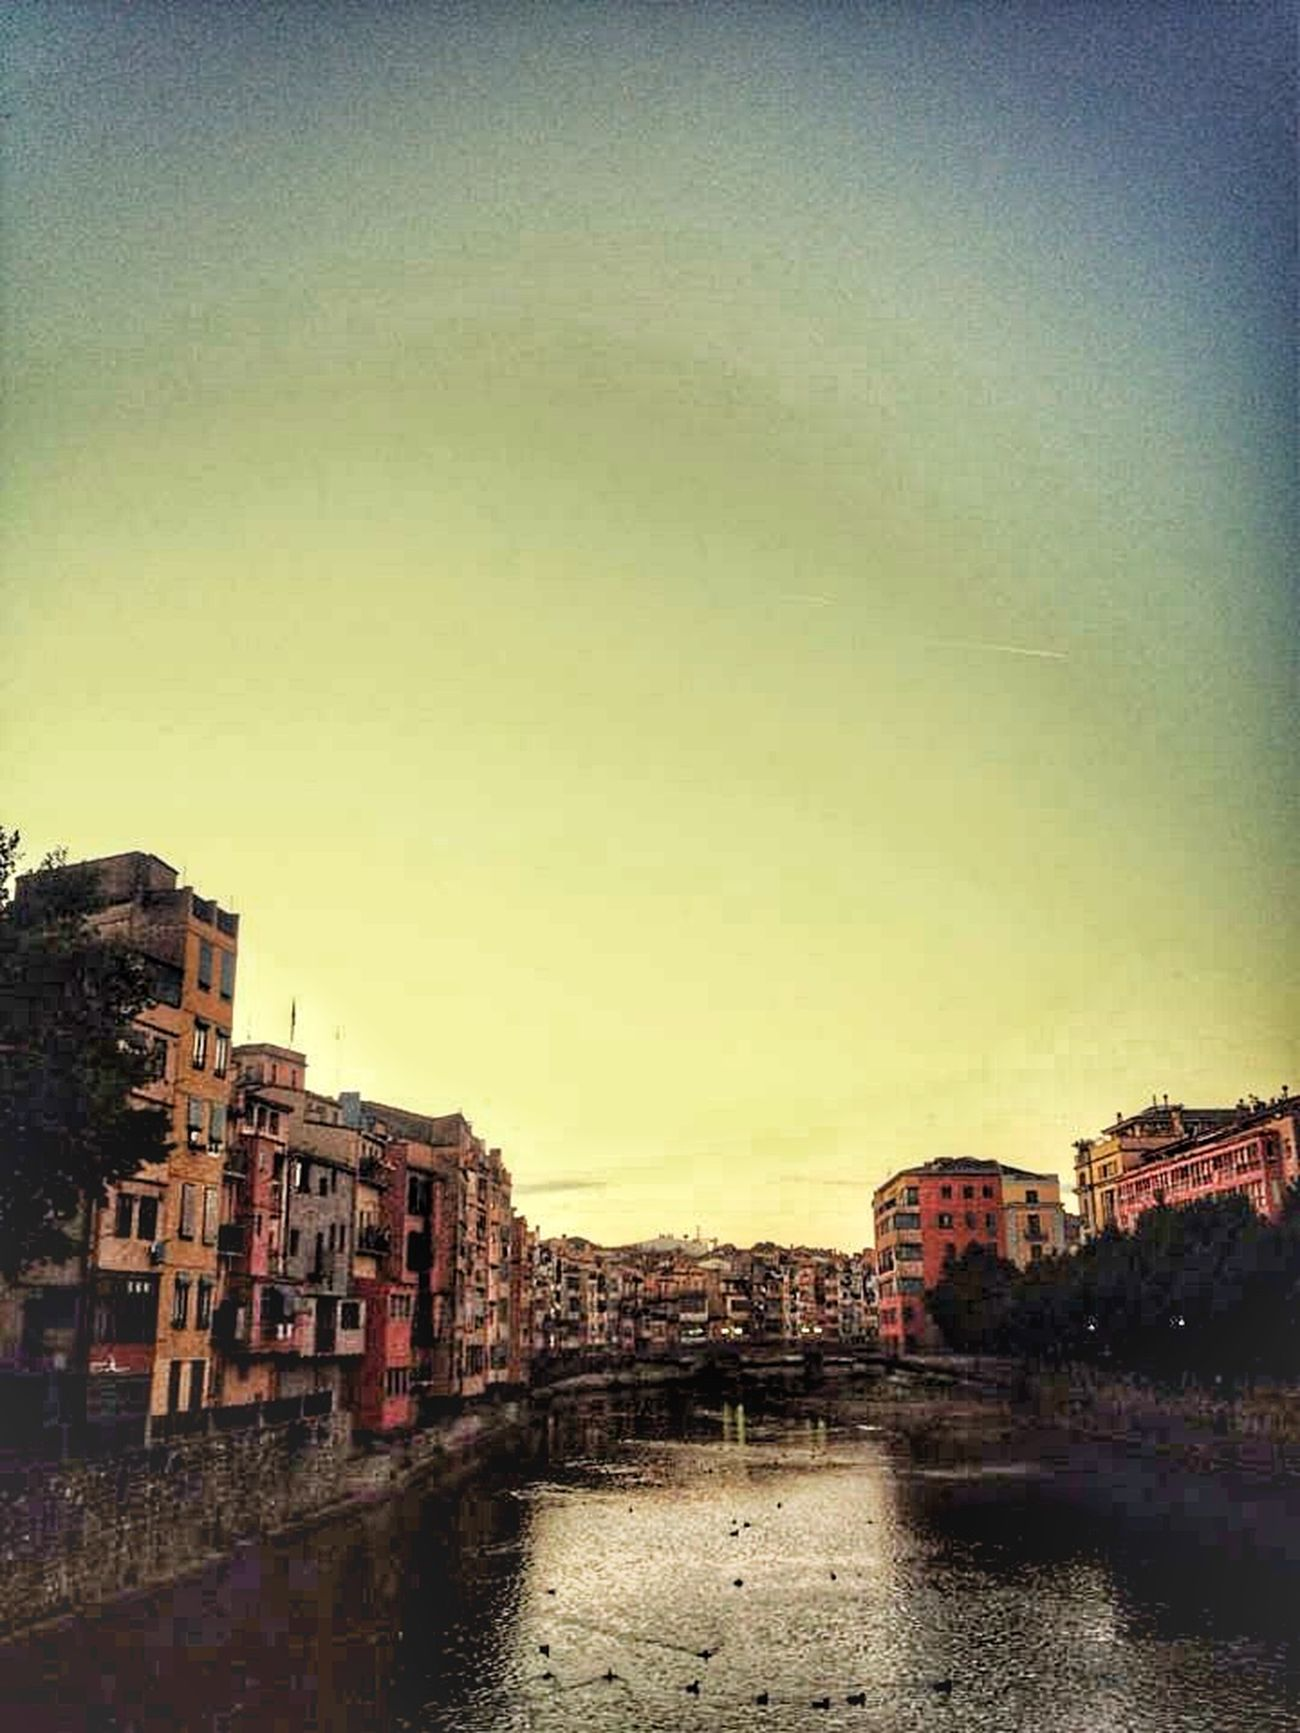 Early Morning Girona SPAIN Traveling Walking Around Kiwi Clicker Good Morning! Morning Sky Walking Around The City  Buildings Riverside